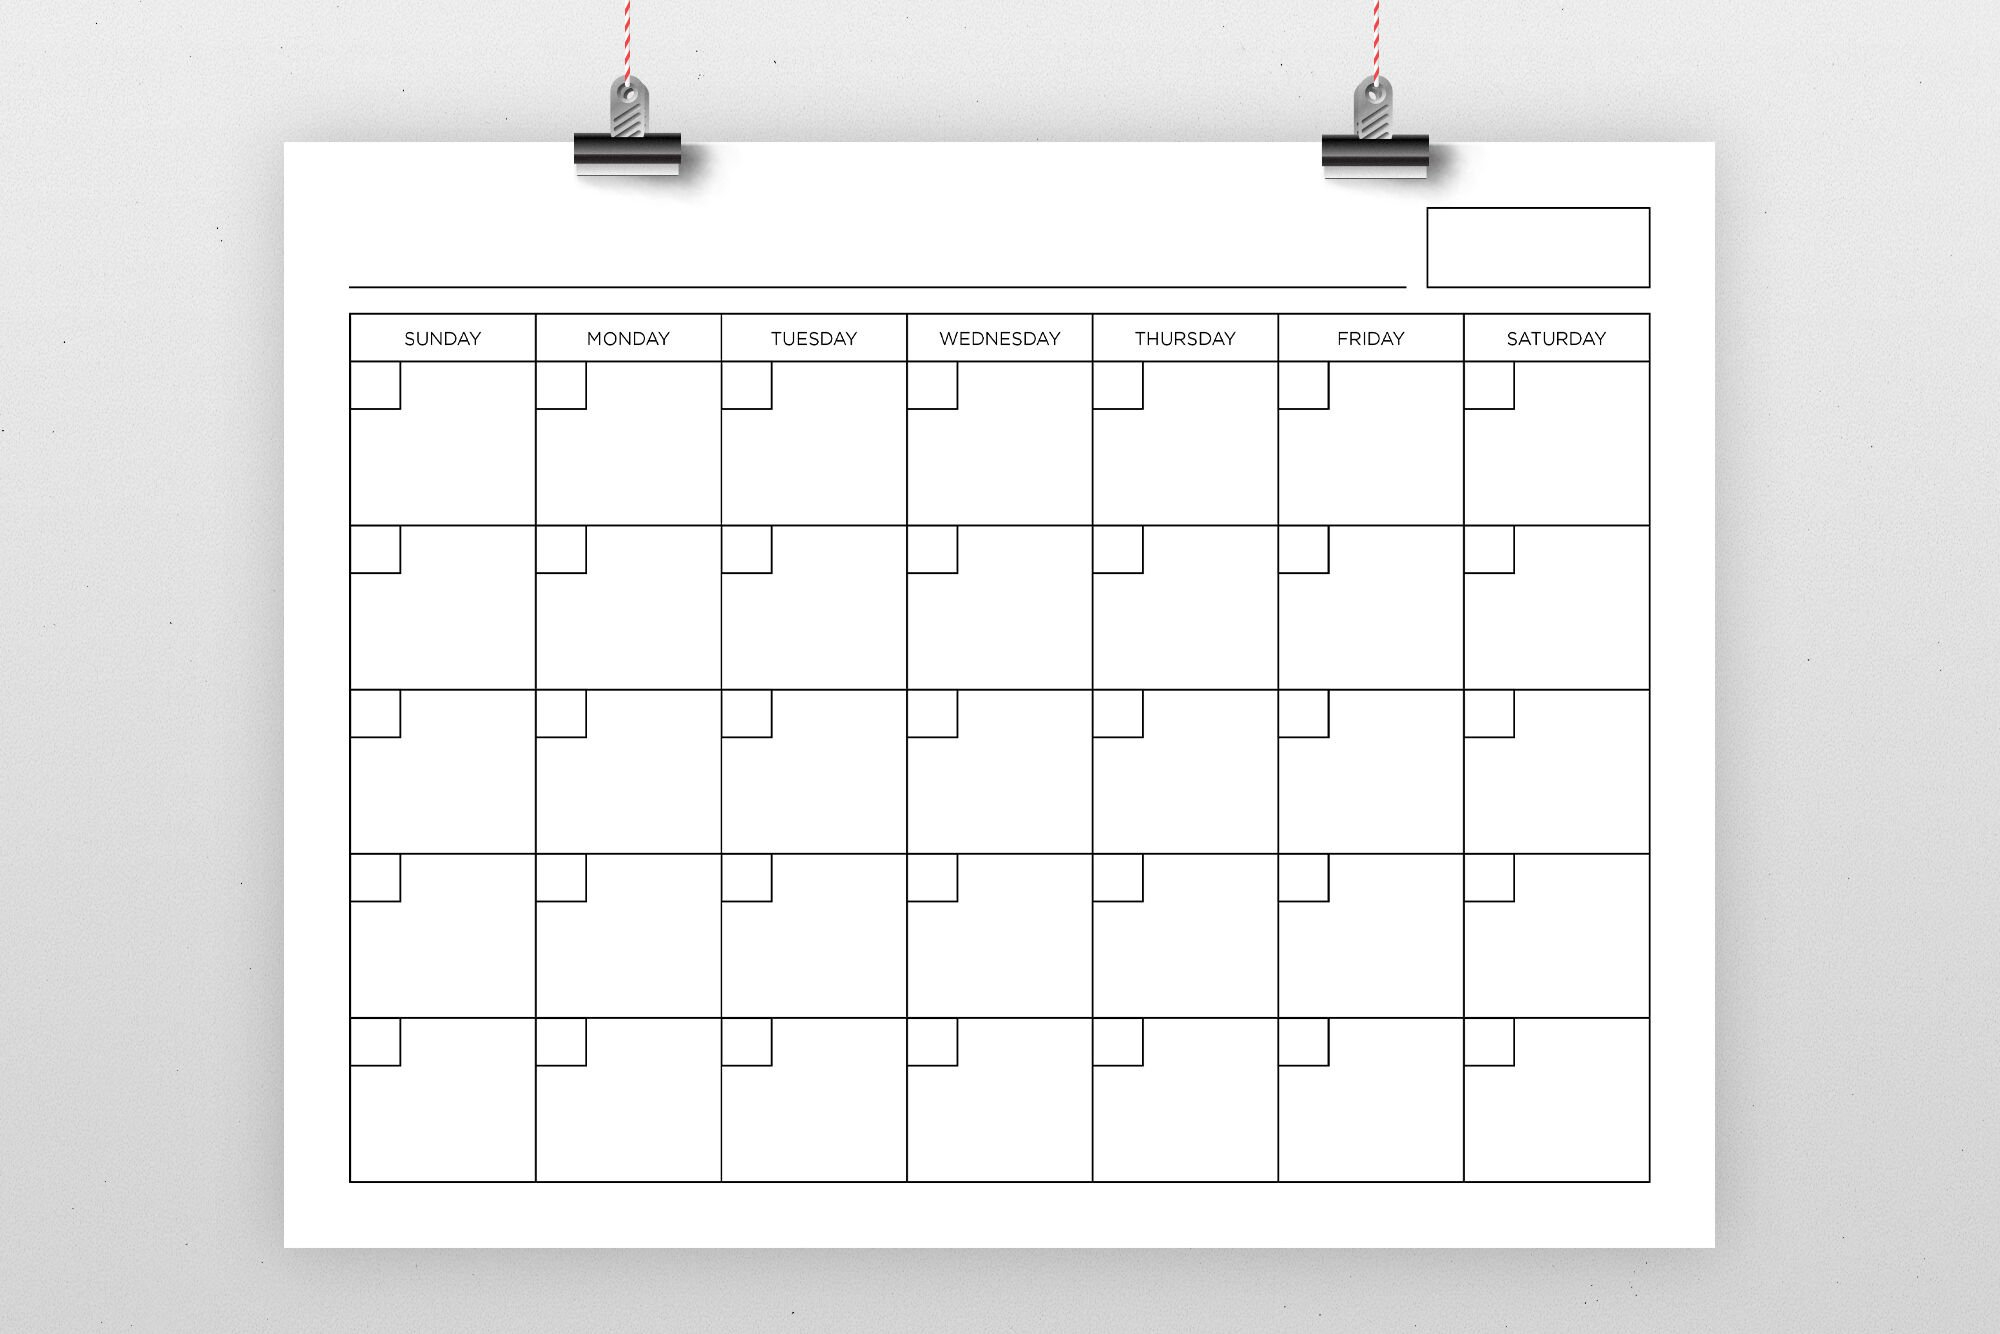 8.5 X 11 Inch Blank Calendar Page Templaterunning With Monday Through Friday 8-5 Calendar